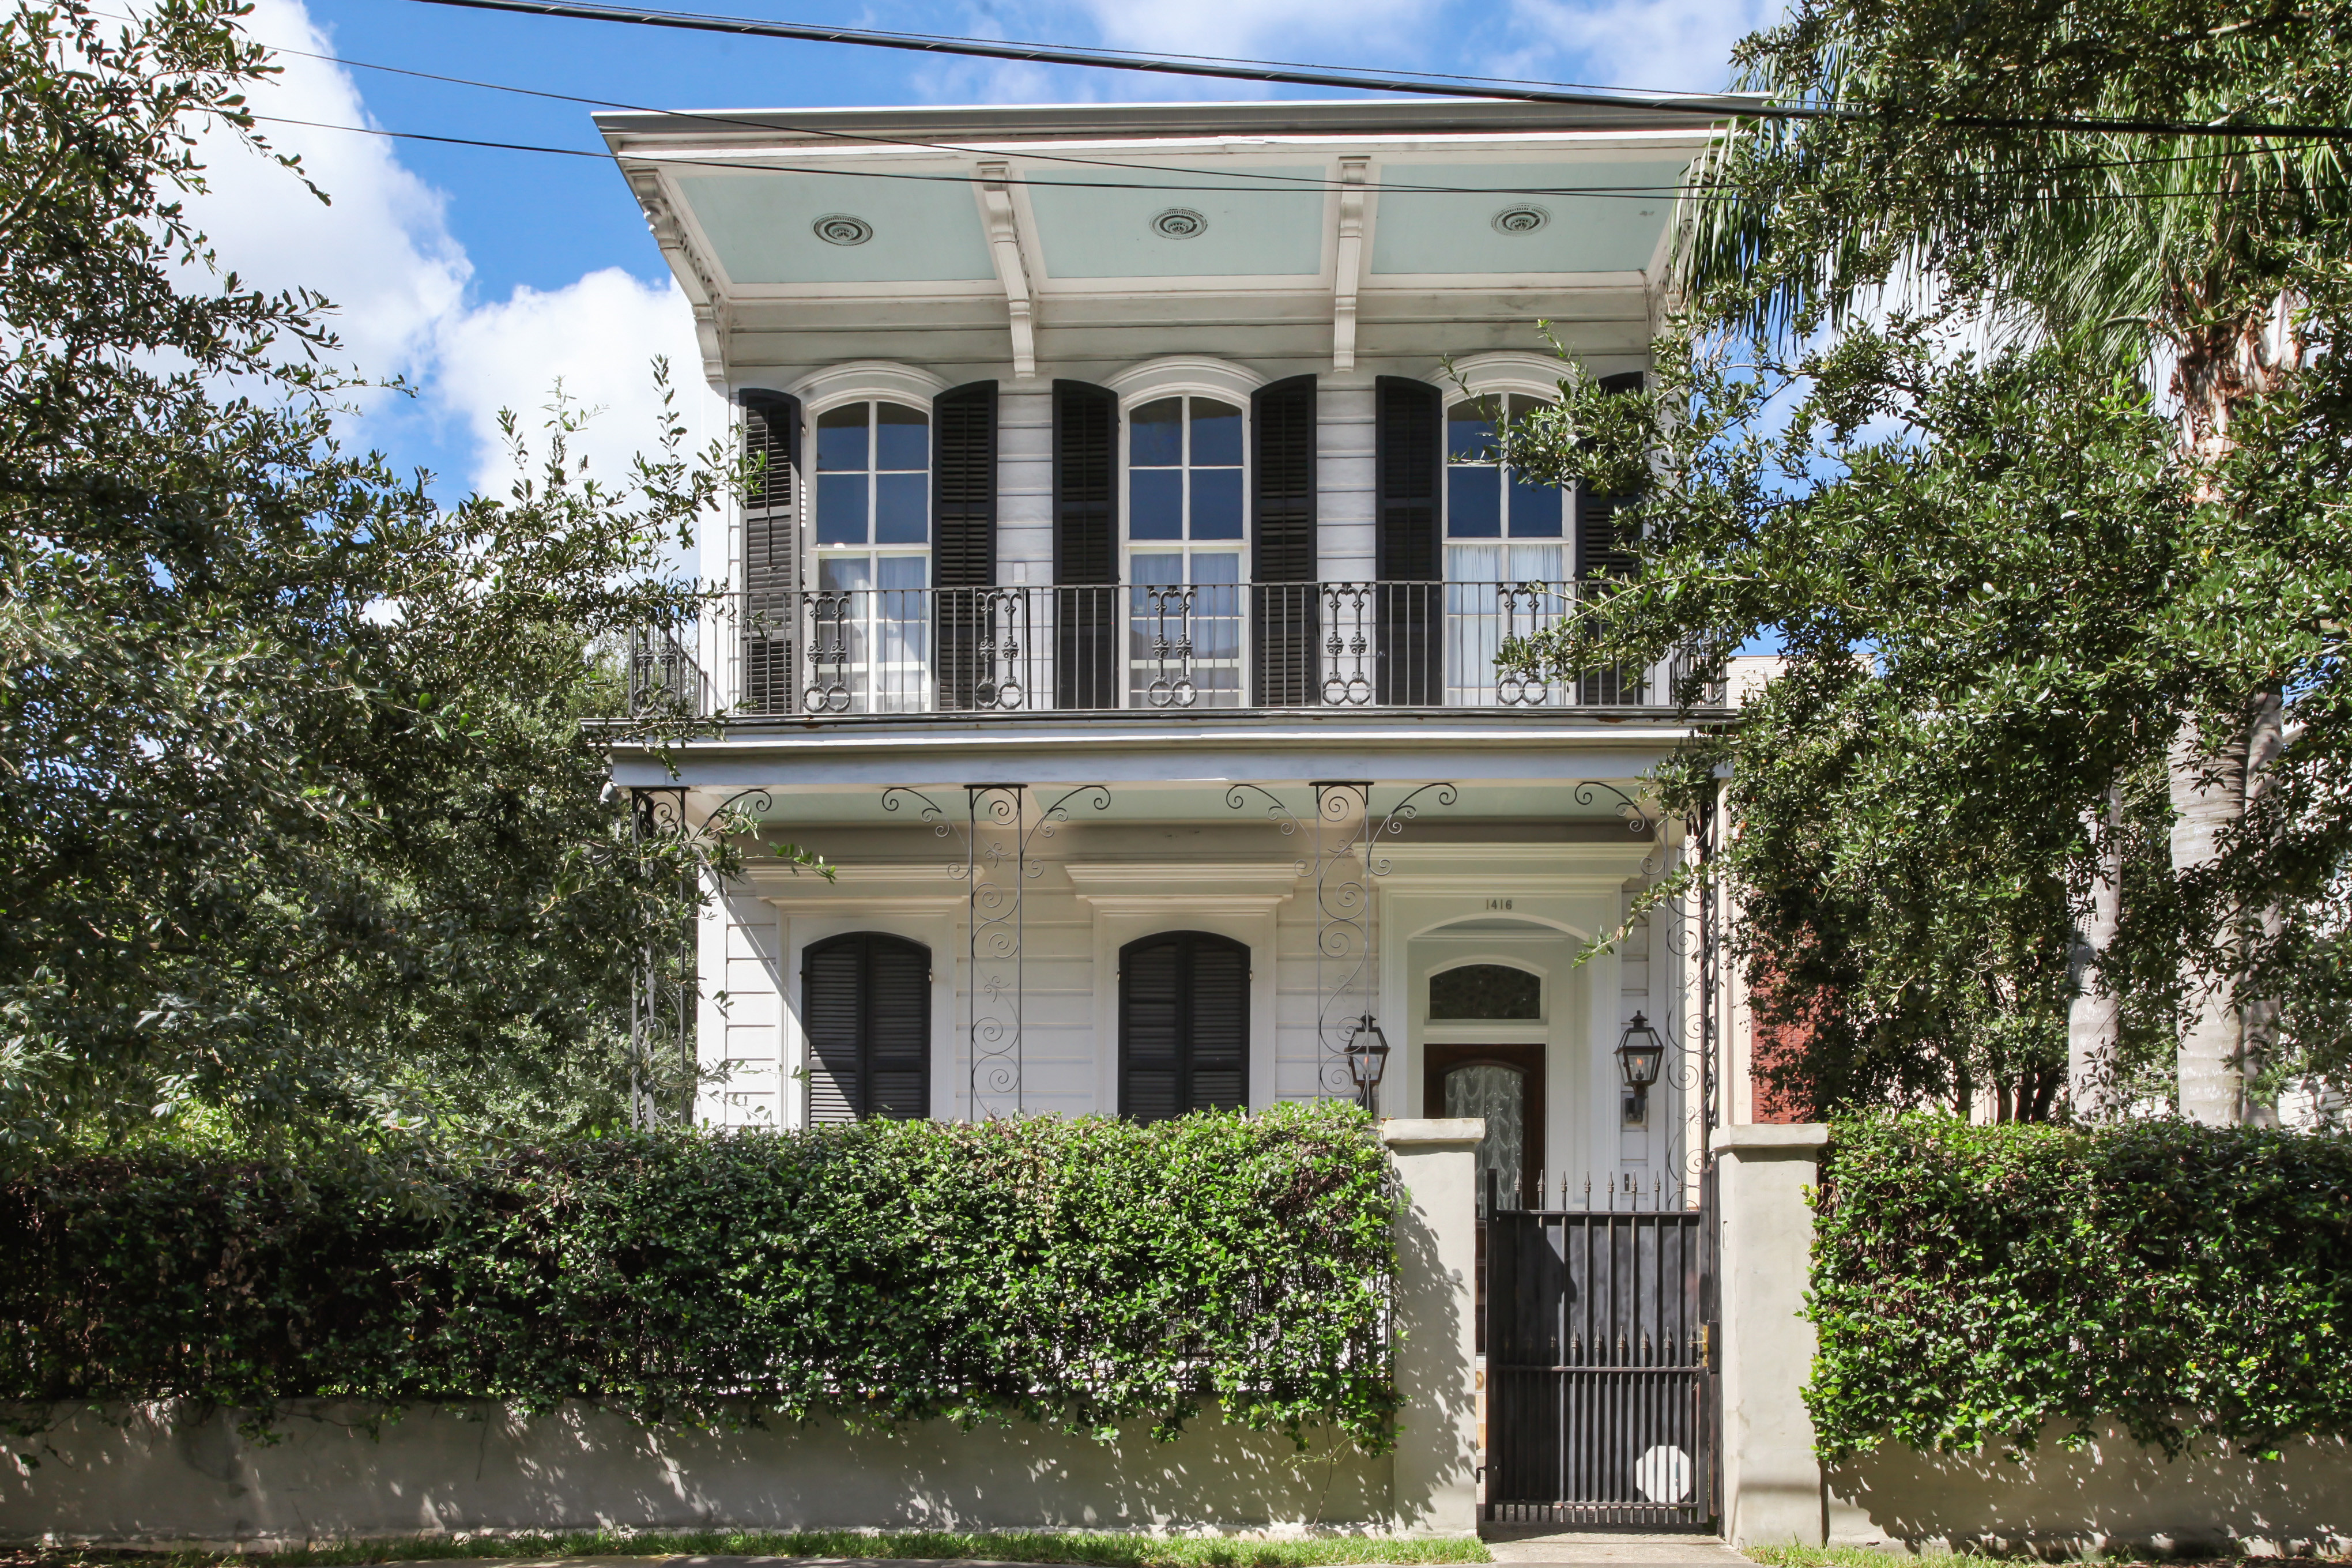 discount hardwood flooring 1416 channing of new orleans homes neighborhoods architecture and real estate for you can own this double gallery victorian for a cool 1m